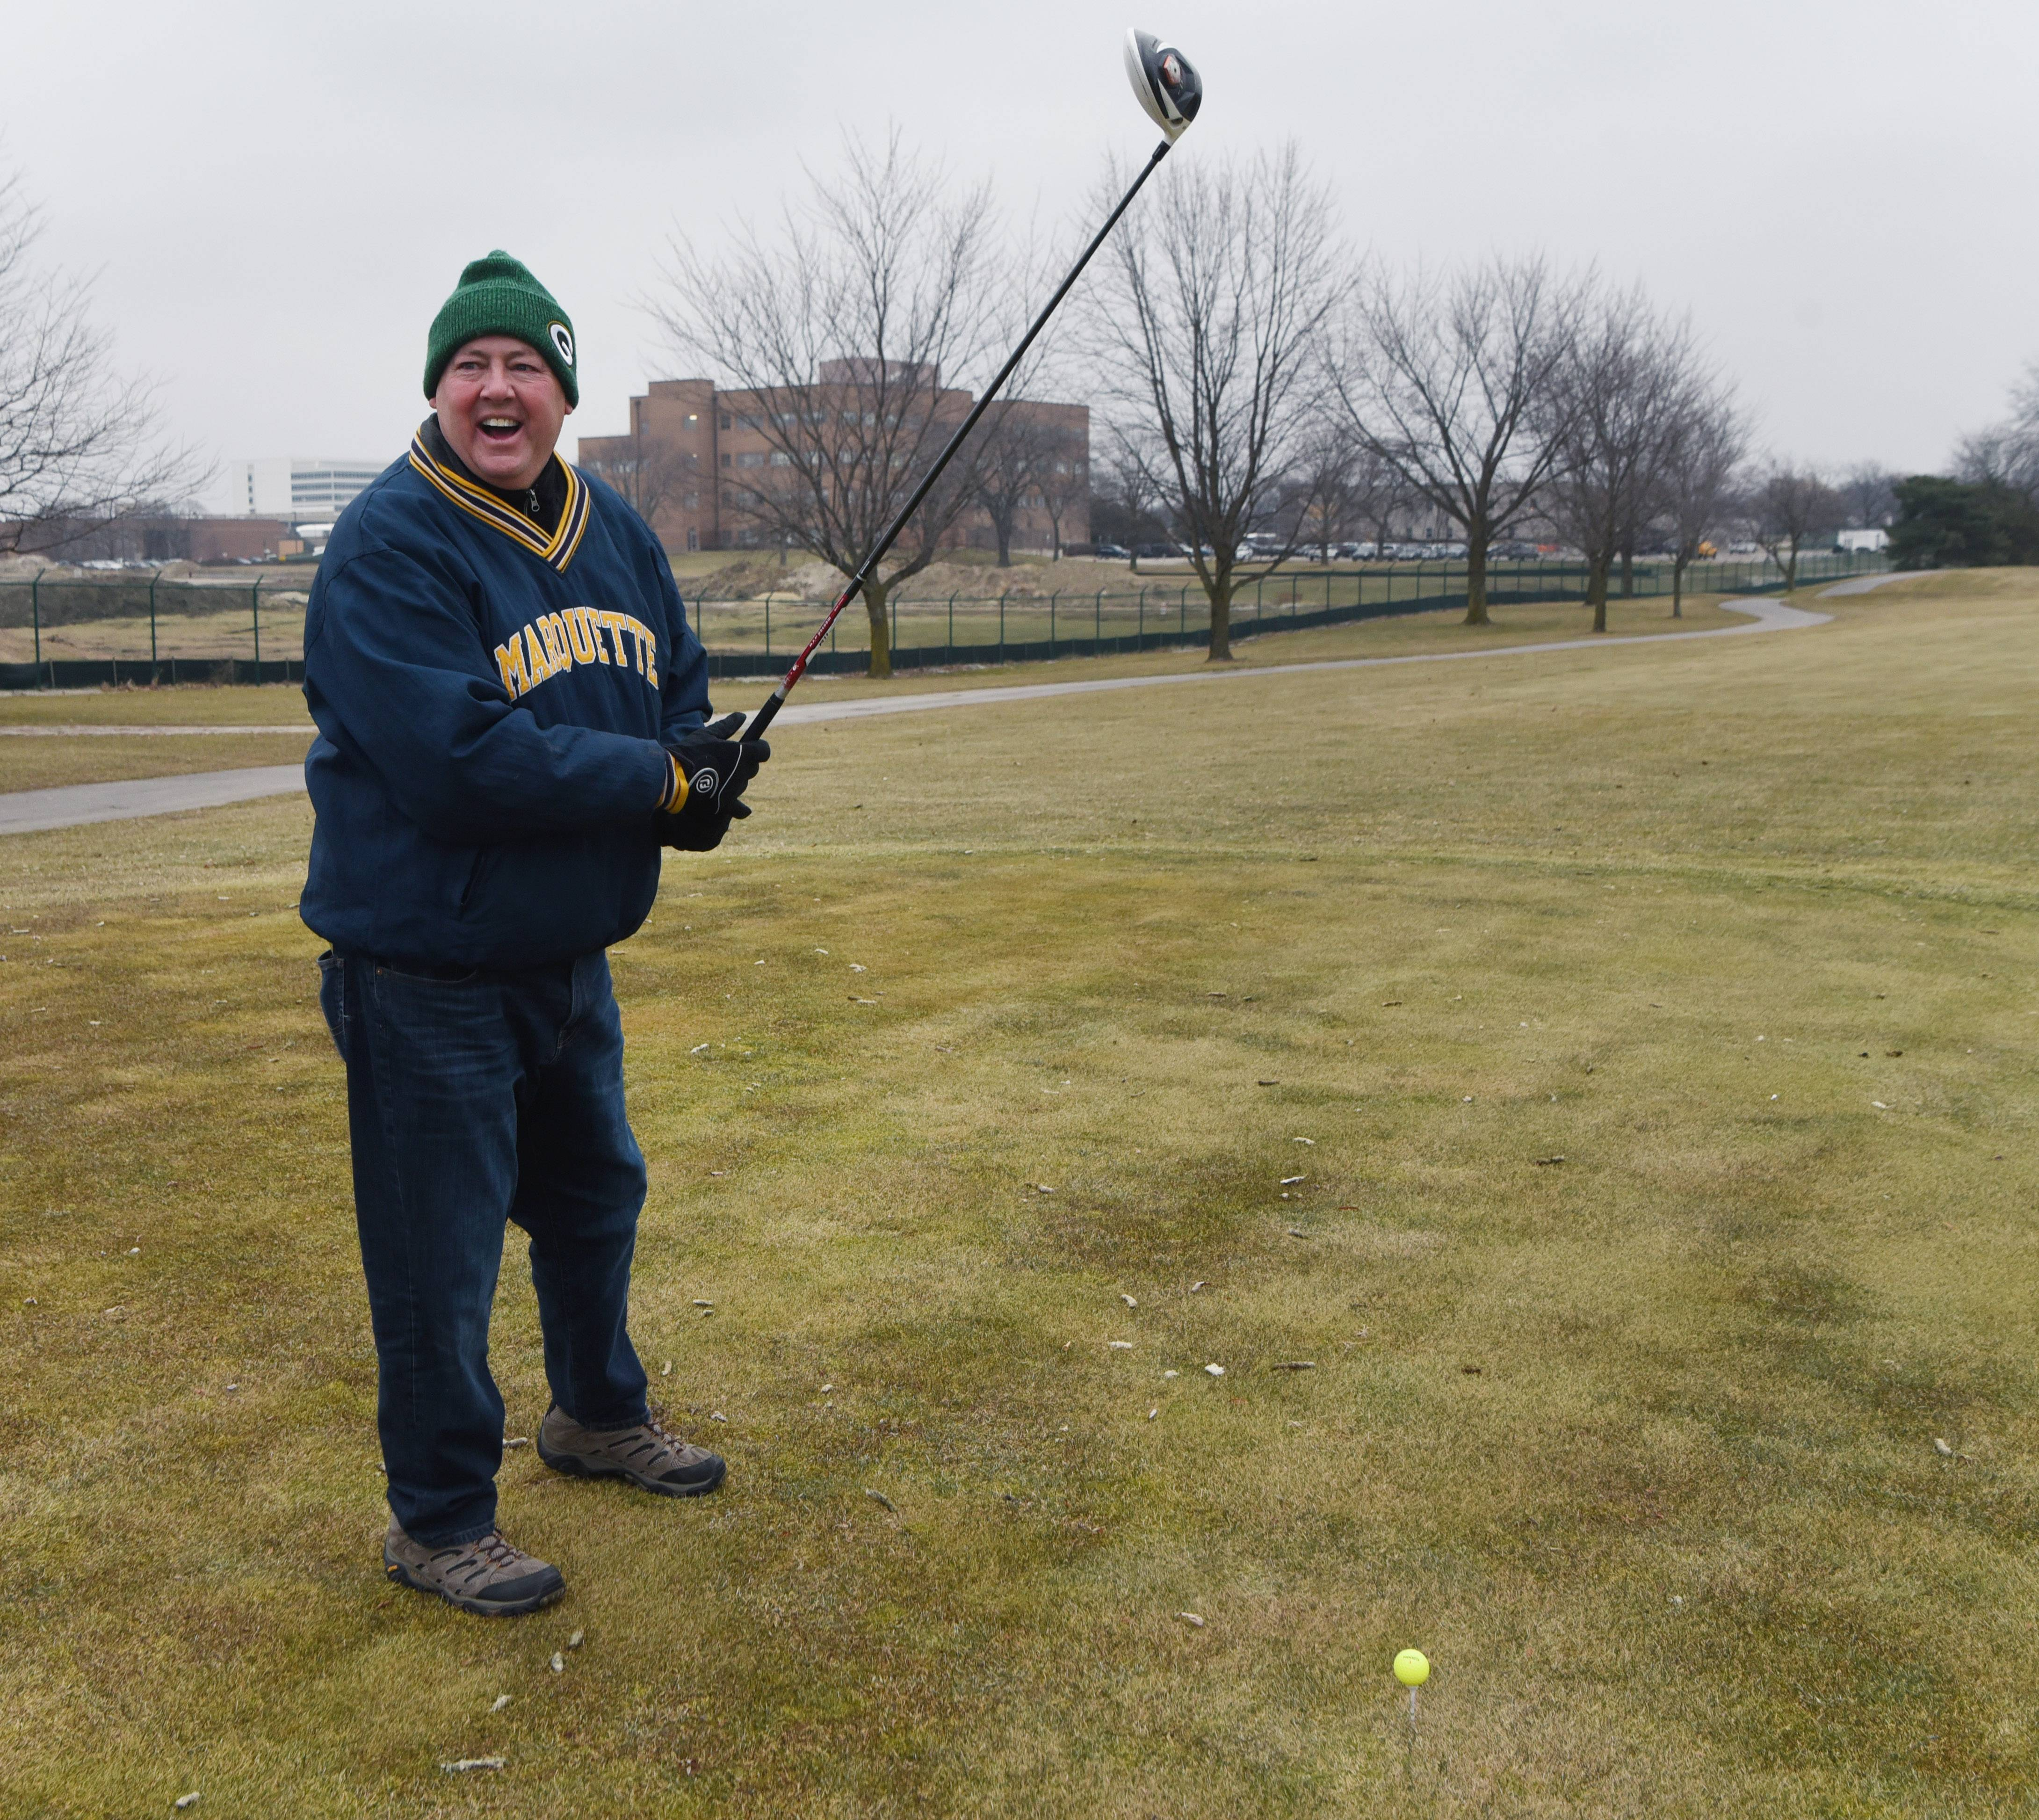 Bob Schultz of Arlington Heights gets ready to tee off during the Chilly Open at Arlington Lakes Golf Club in Arlington Heights Saturday.